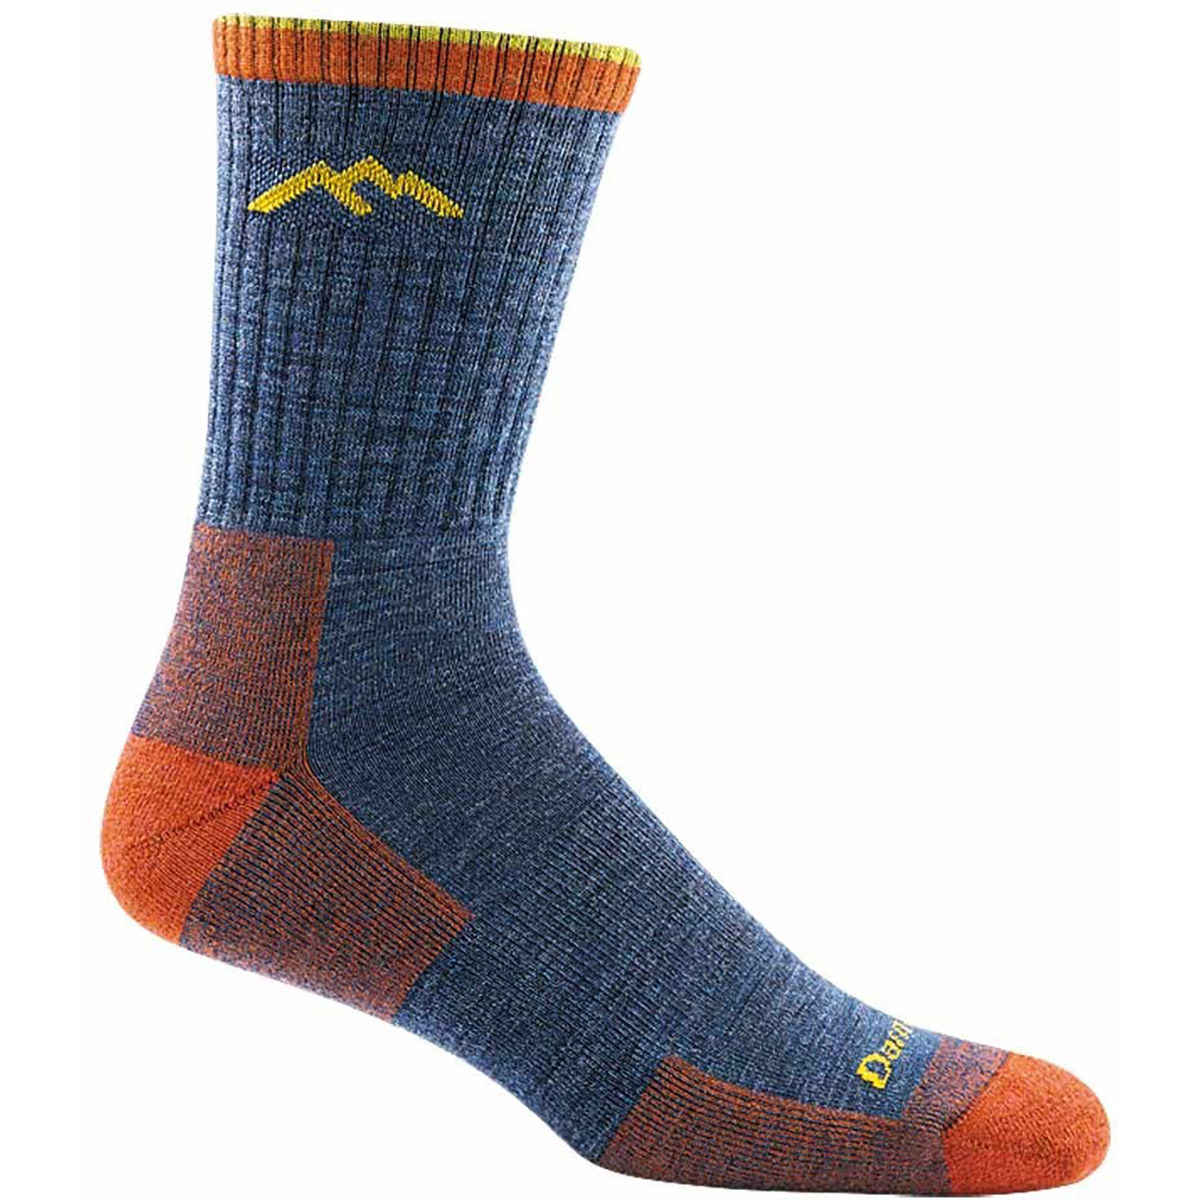 Darn Tough Darn Tough Hiker Micro Cushion Crew   Socks